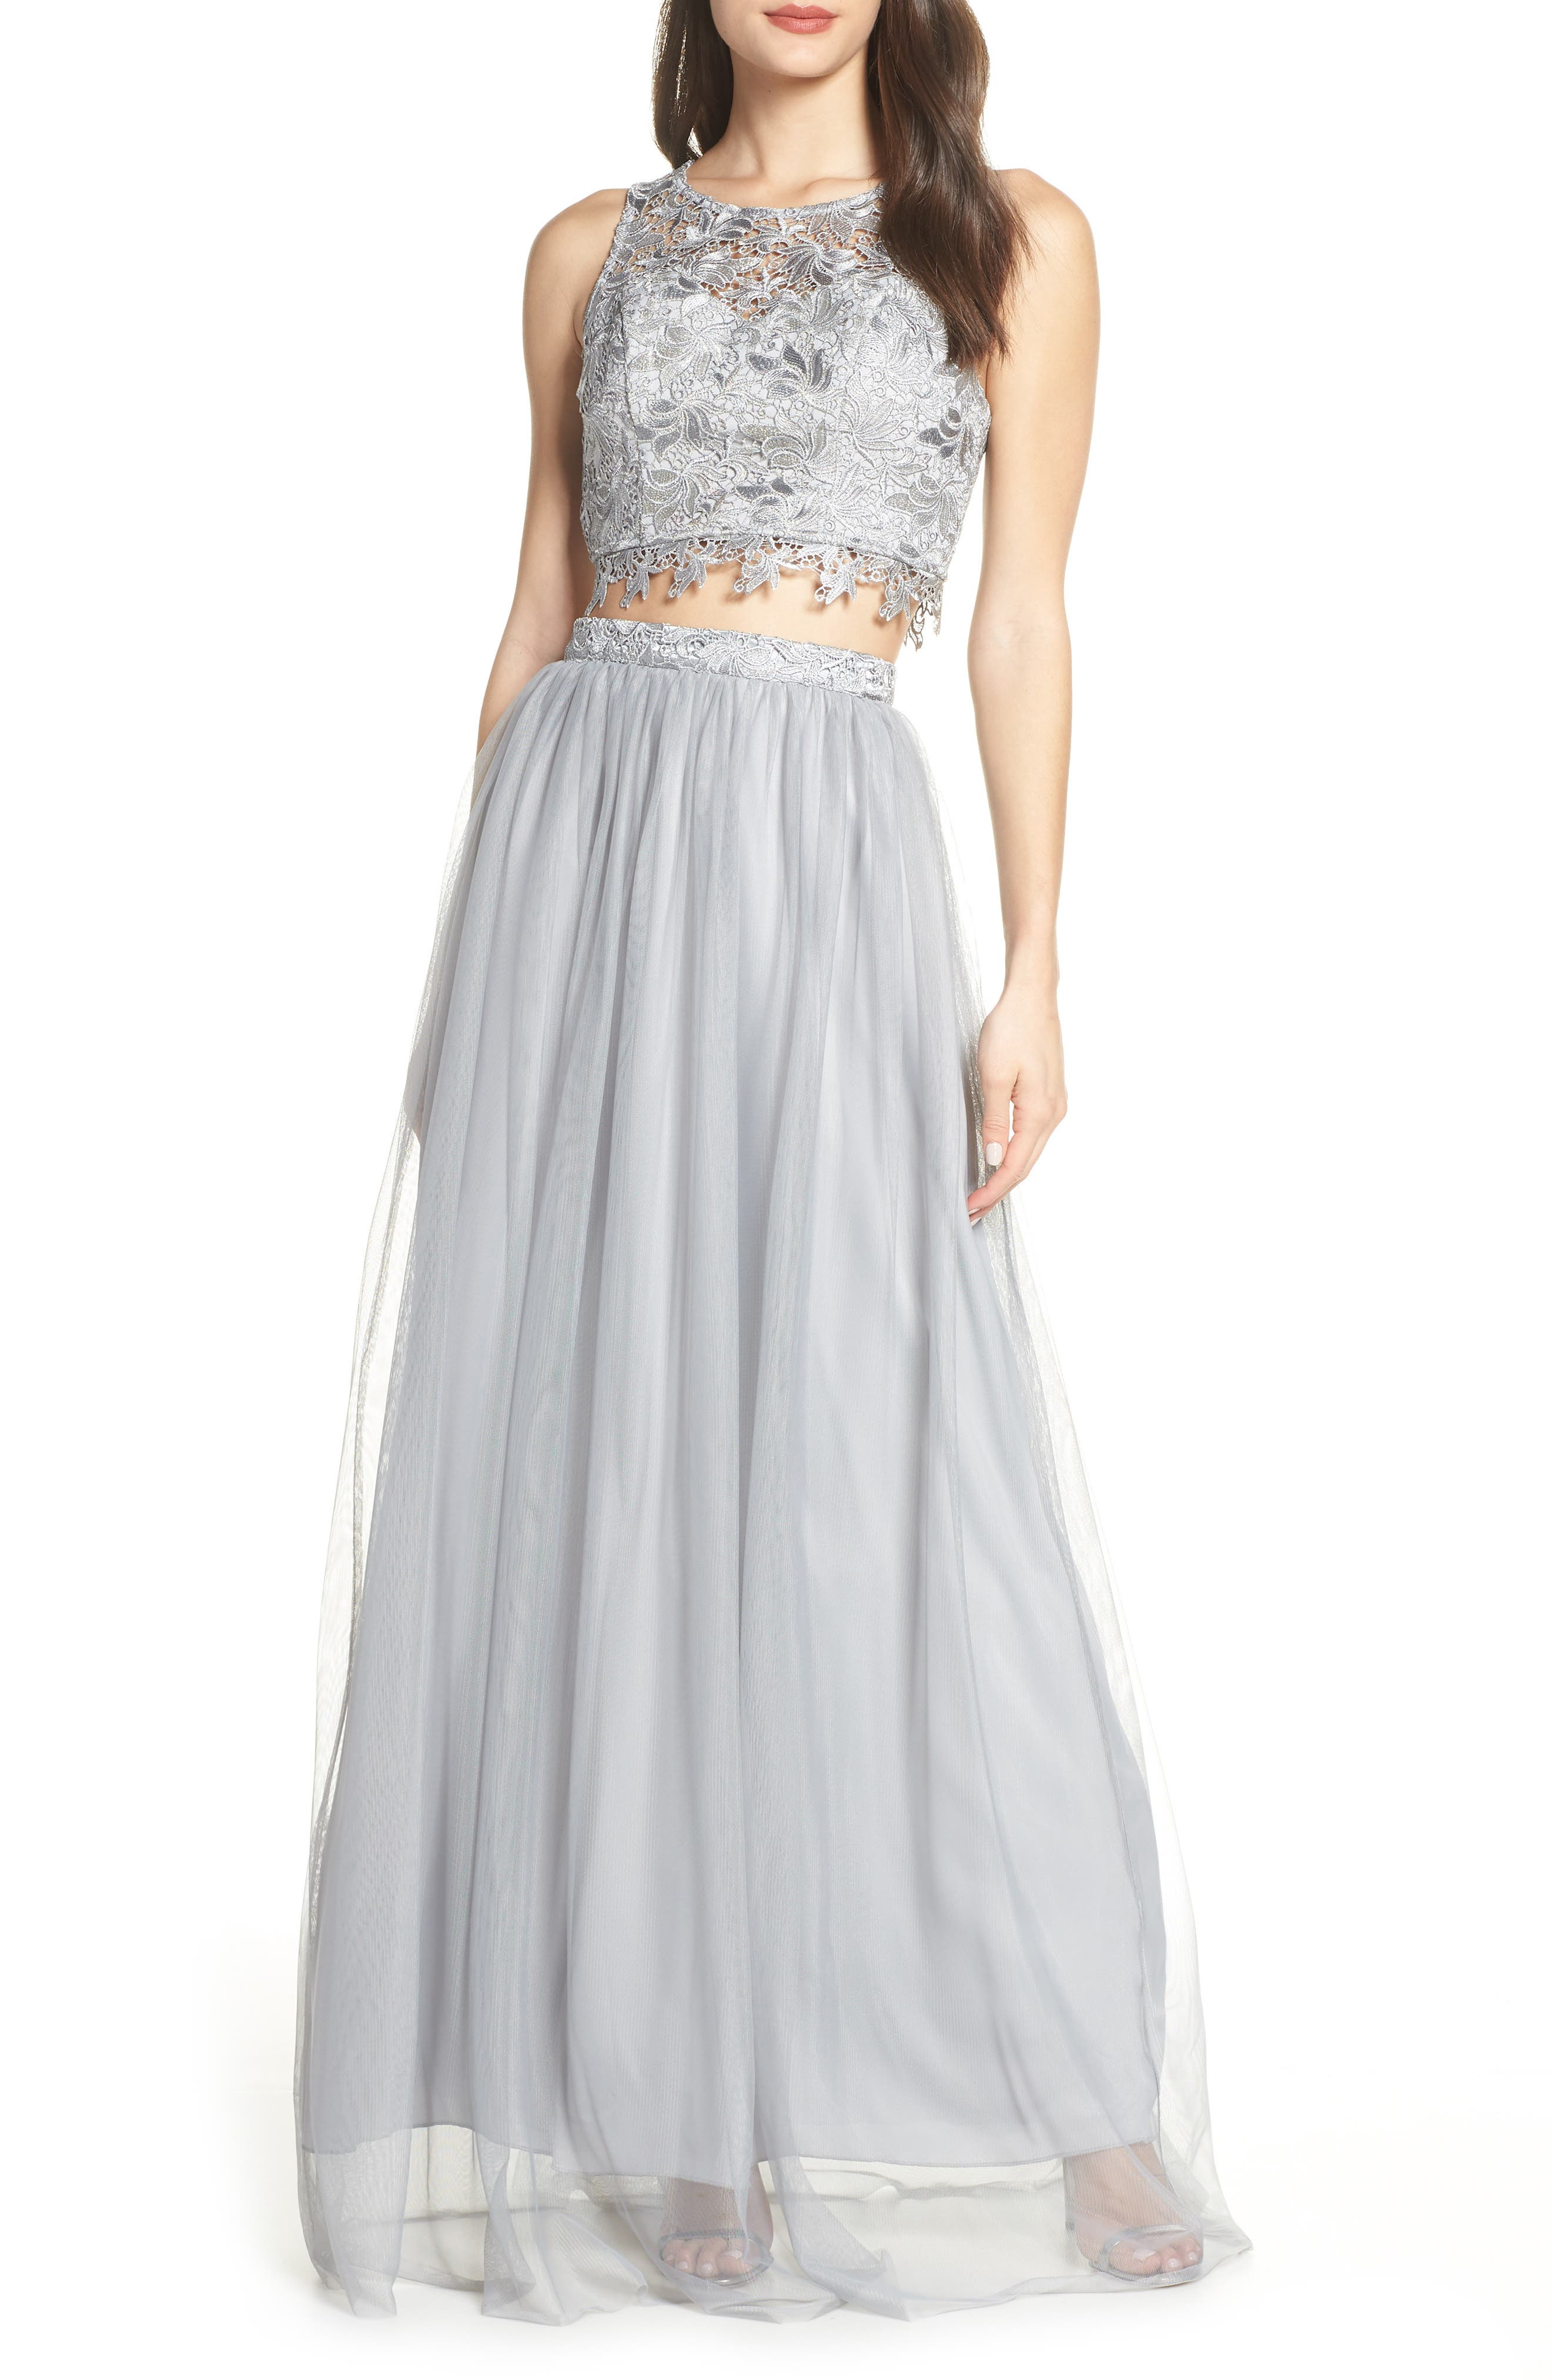 Sequin Hearts Lace & Tulle Two-Piece Evening Dress, Grey